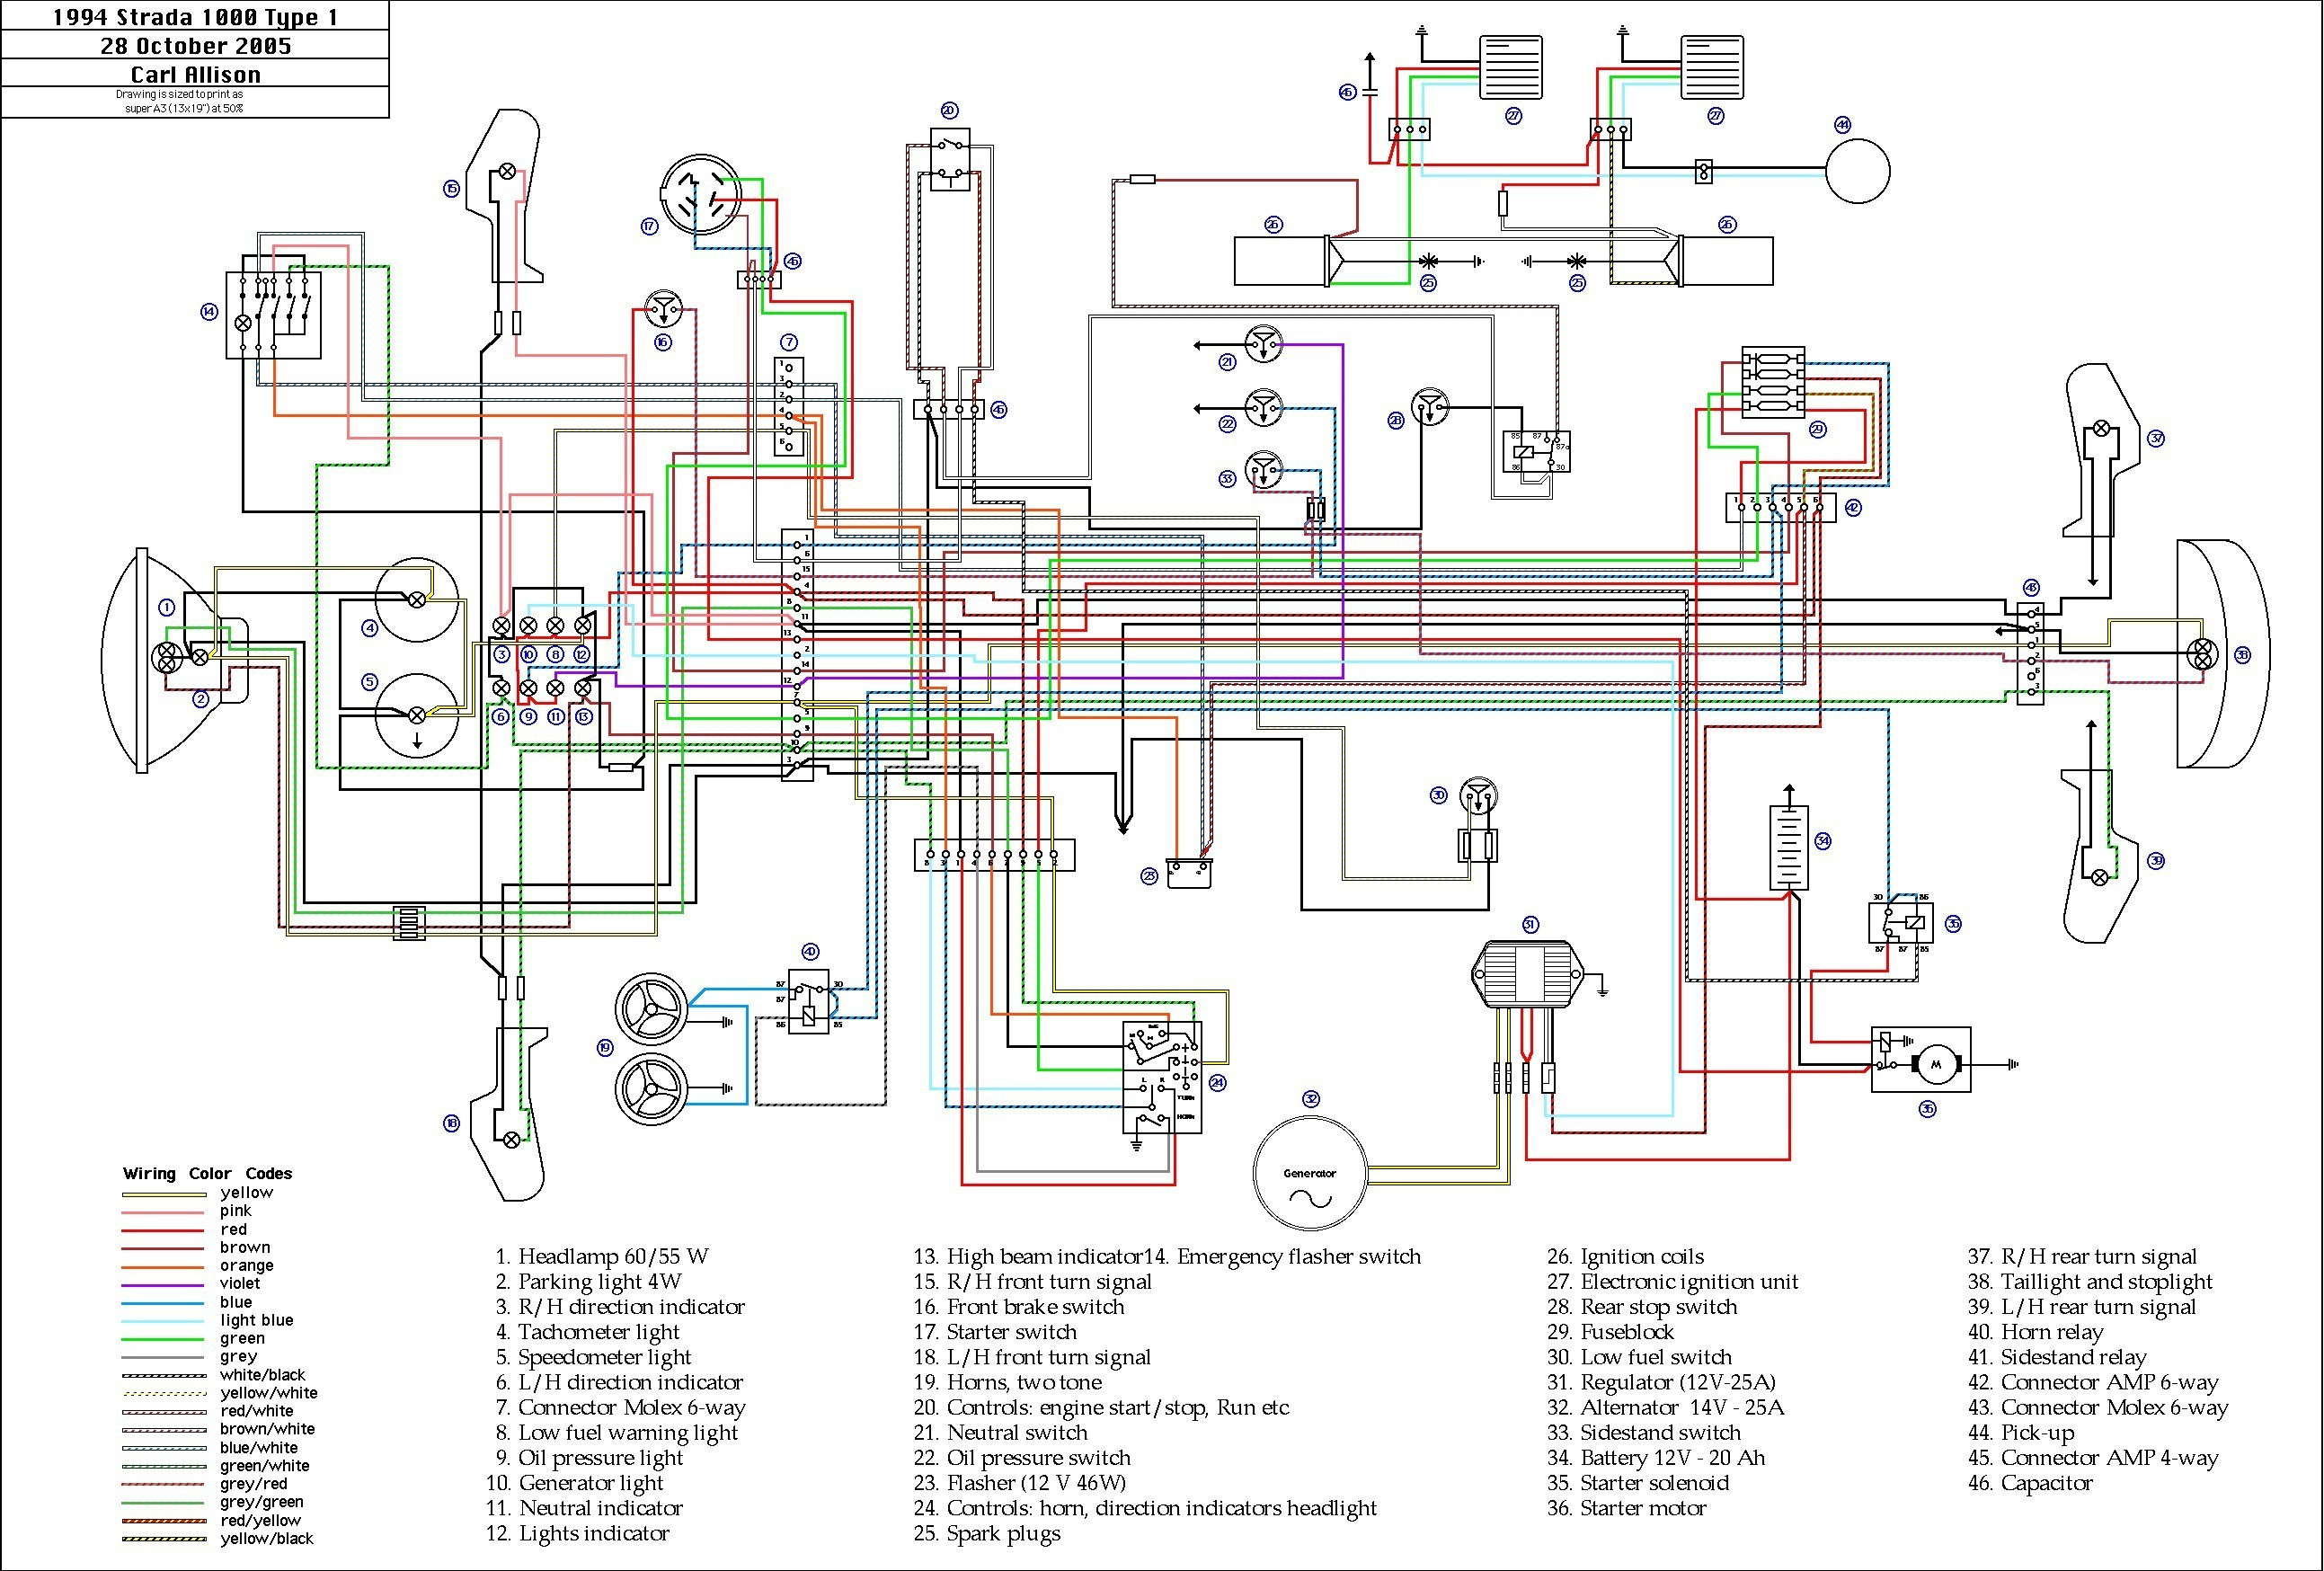 Farmall H Light Wiring Diagram | Wiring Diagram - Farmall H Wiring Diagram